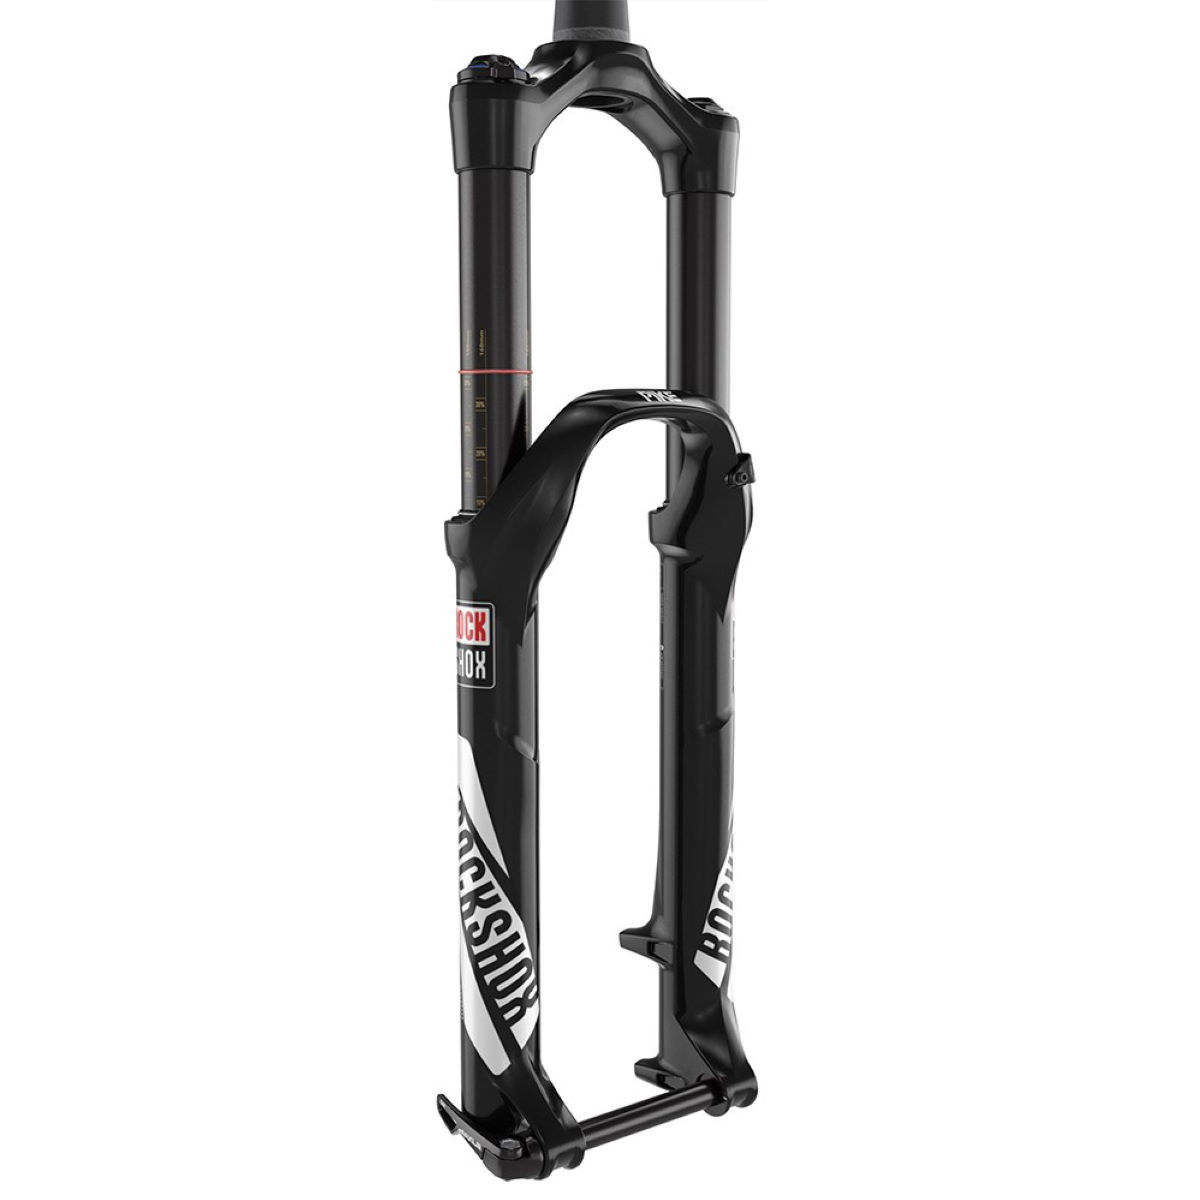 Fourche RockShox Pike RCT3 (650b, Solo Air, Suspension) - Noir